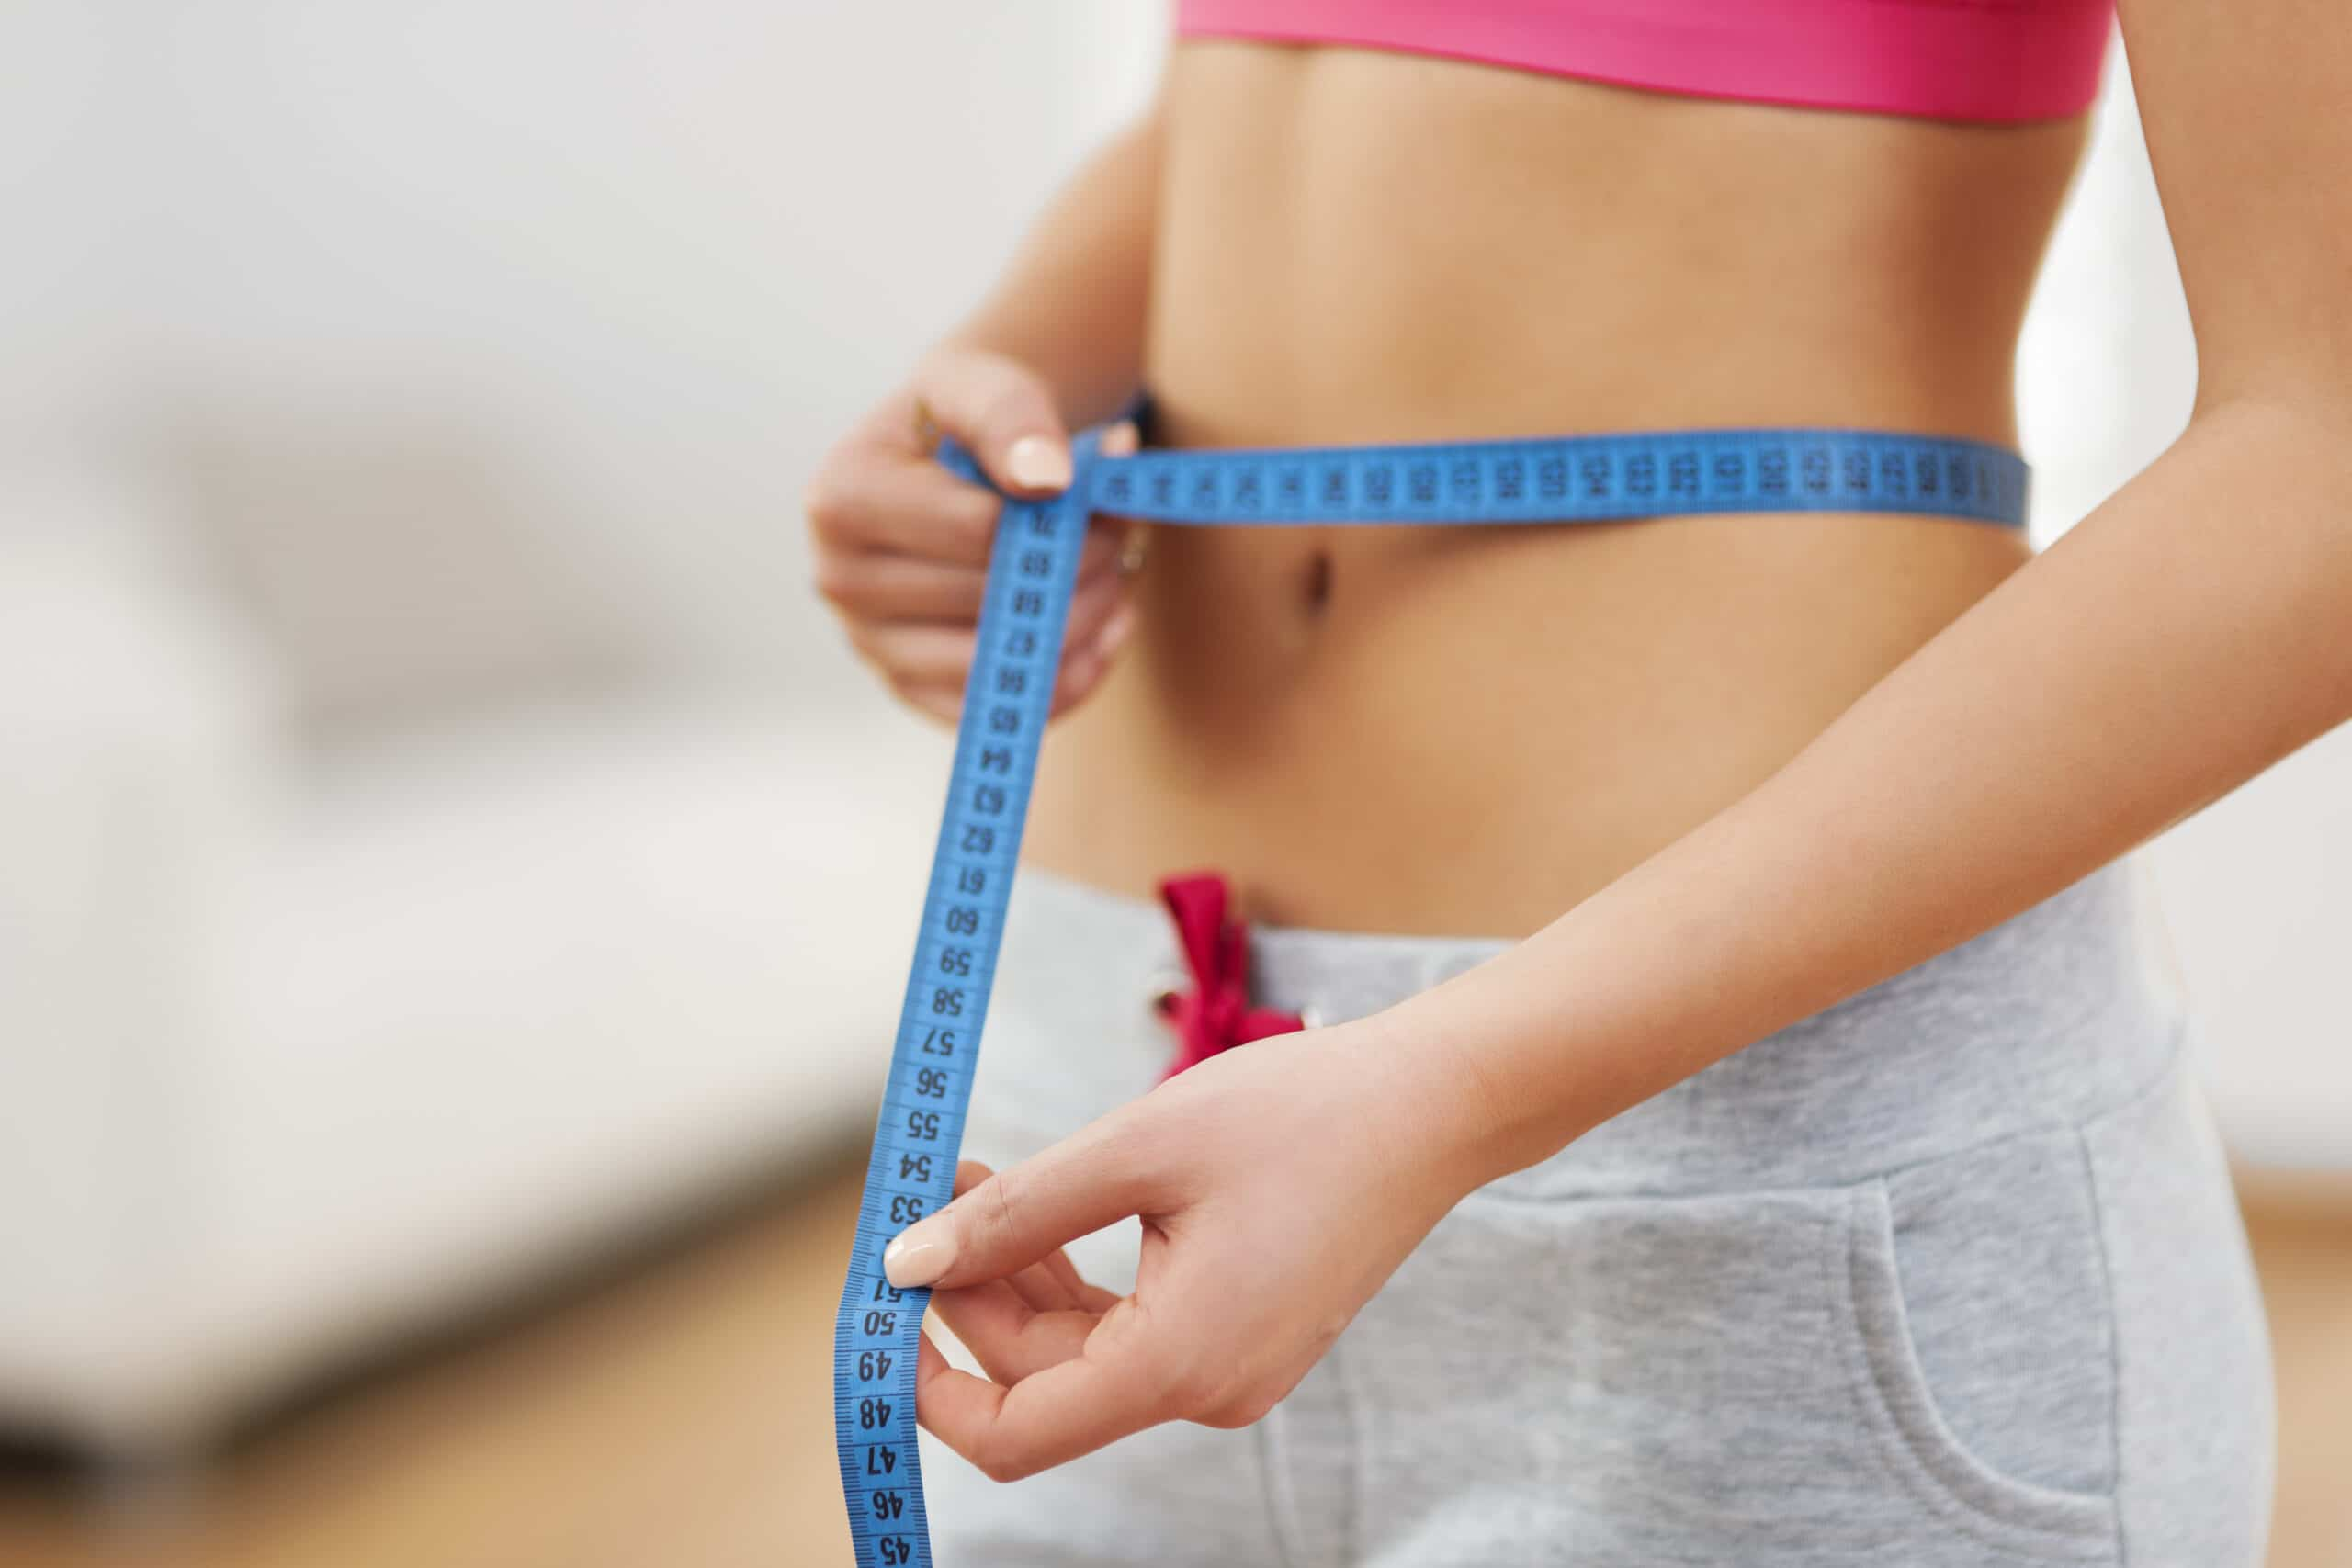 Slim woman with measuring tape